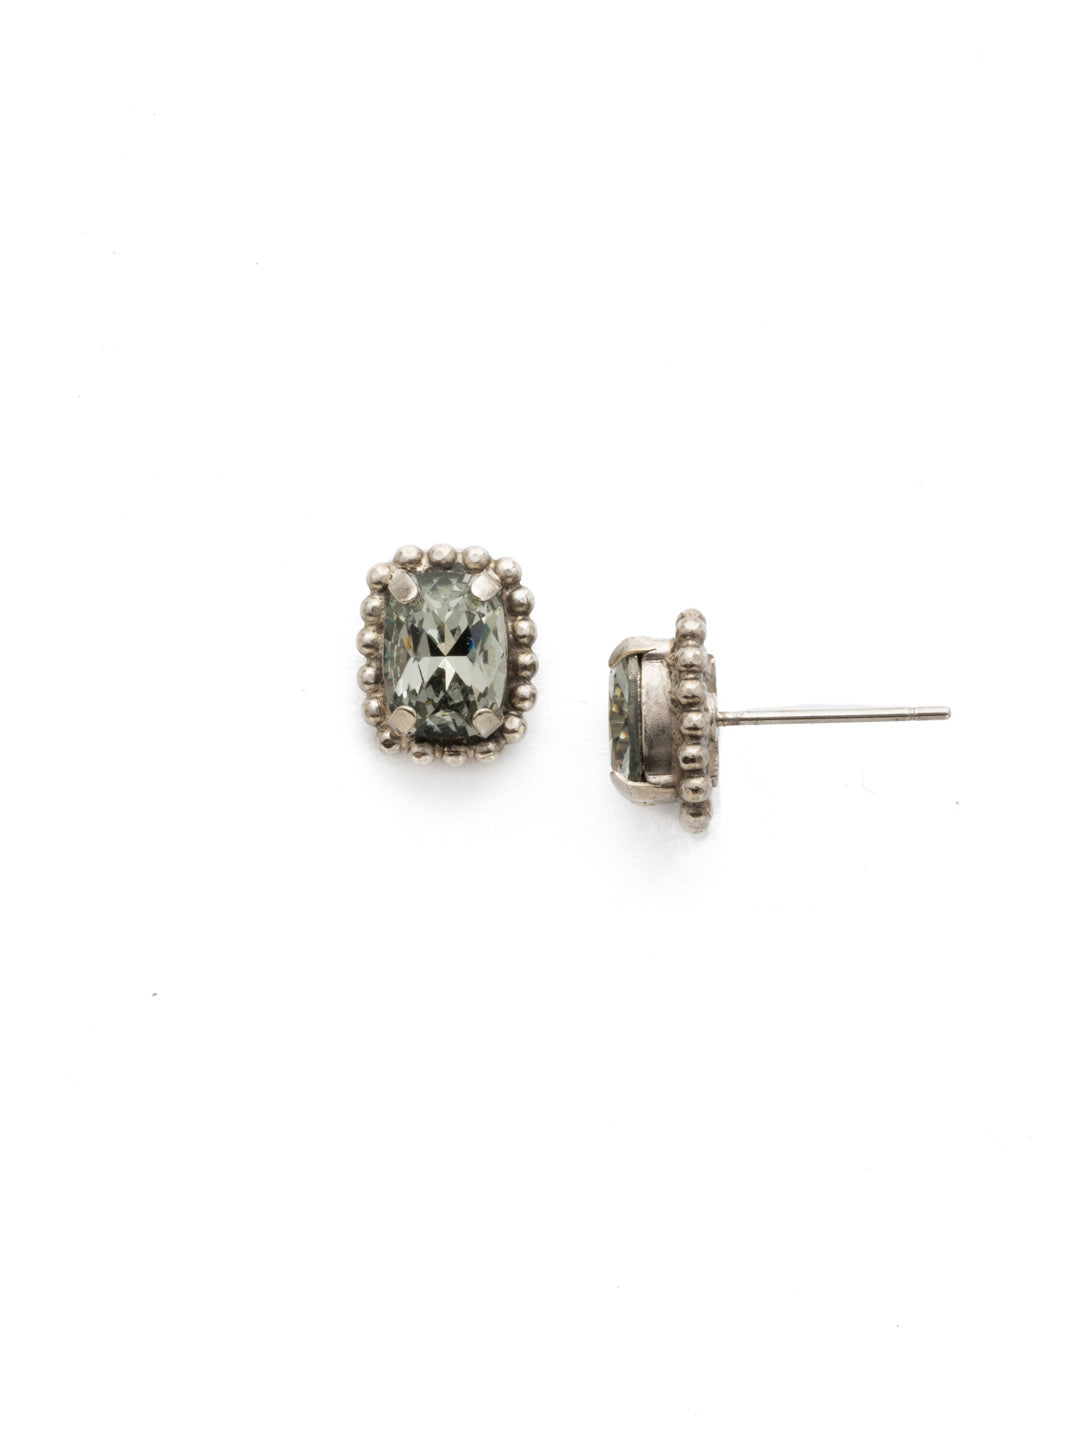 Mini Emerald Embellished Post Earring - EDH41ASCRO